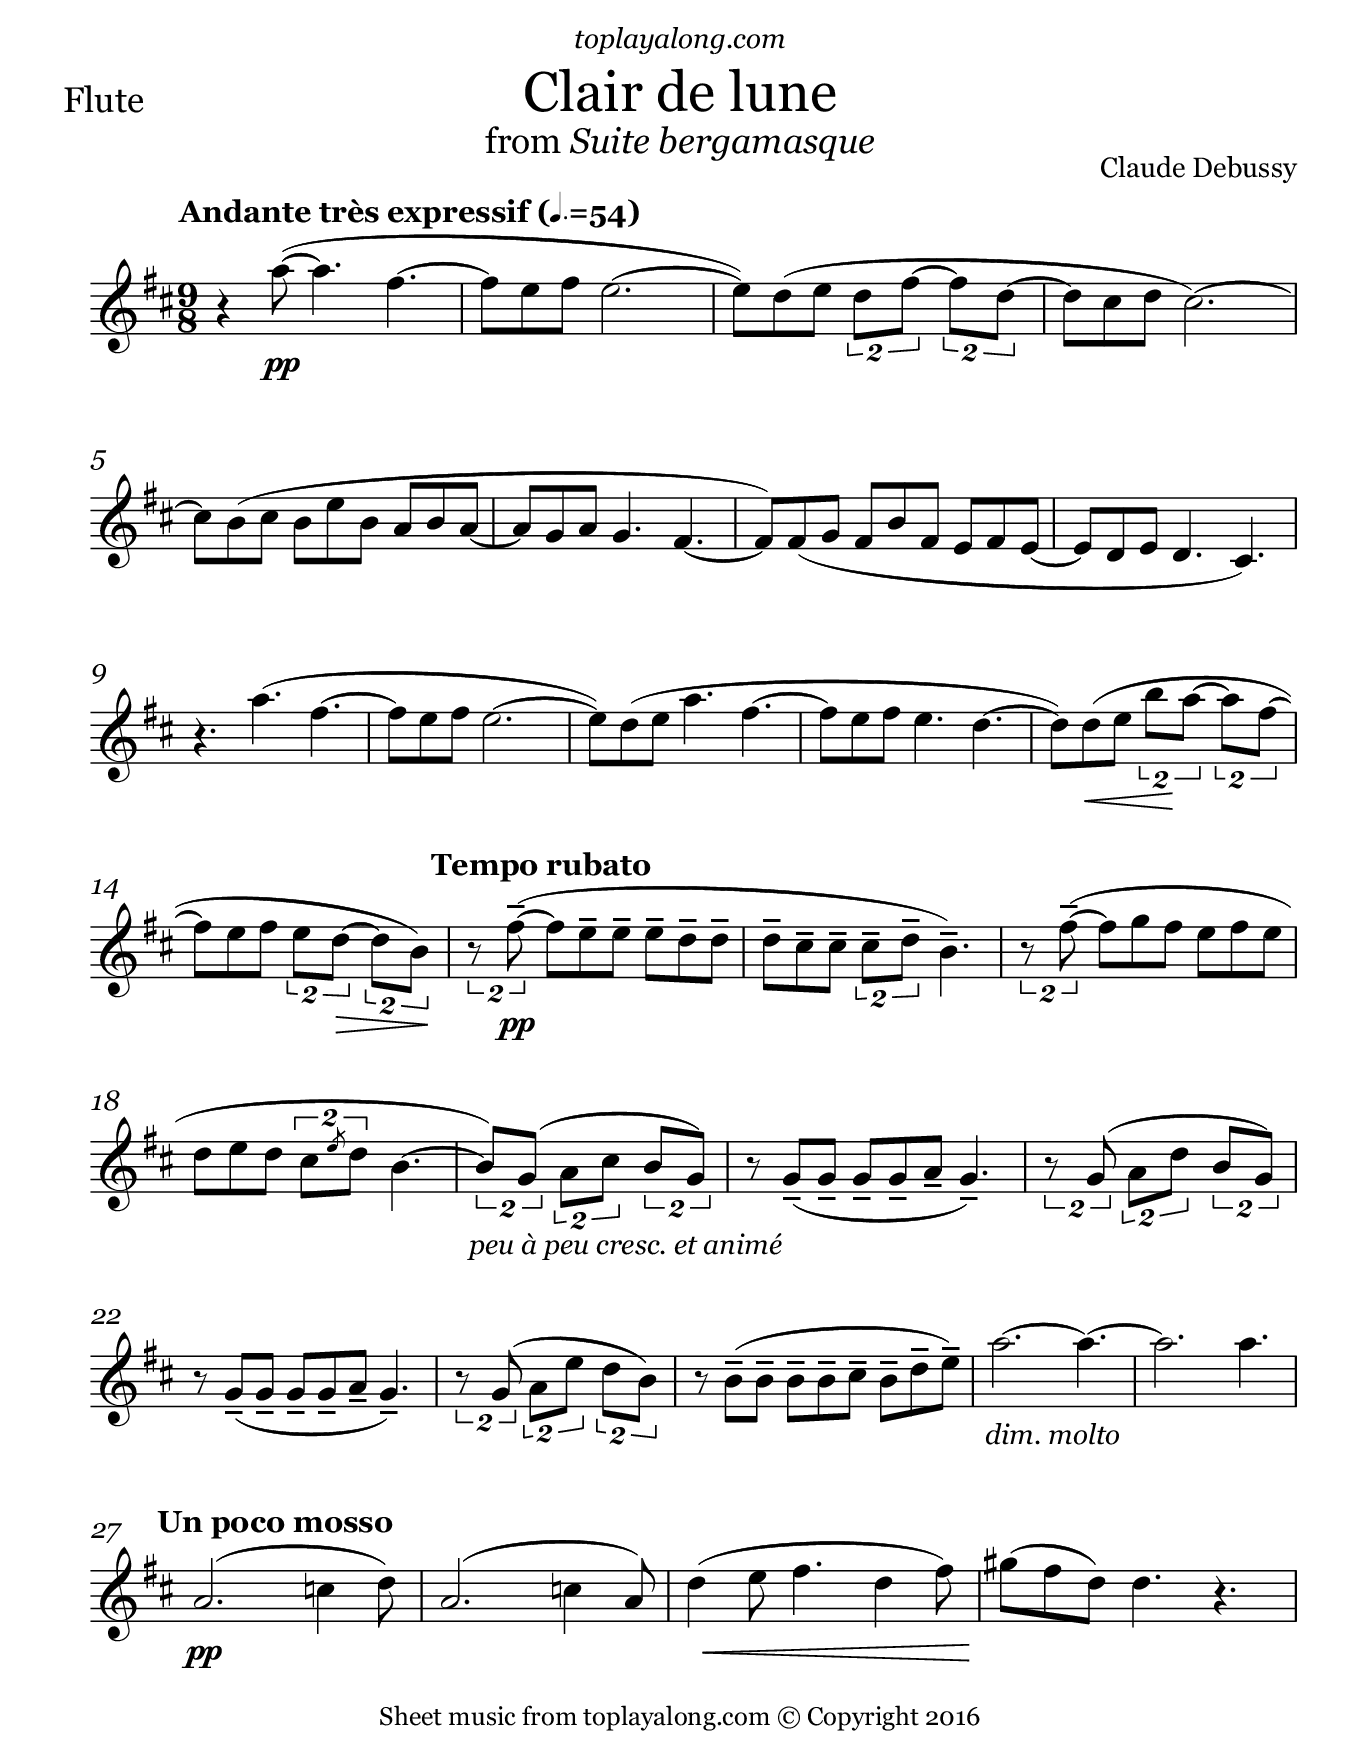 Clair de lune from Suite bergamasque by Debussy. Sheet music for Flute, page 1.